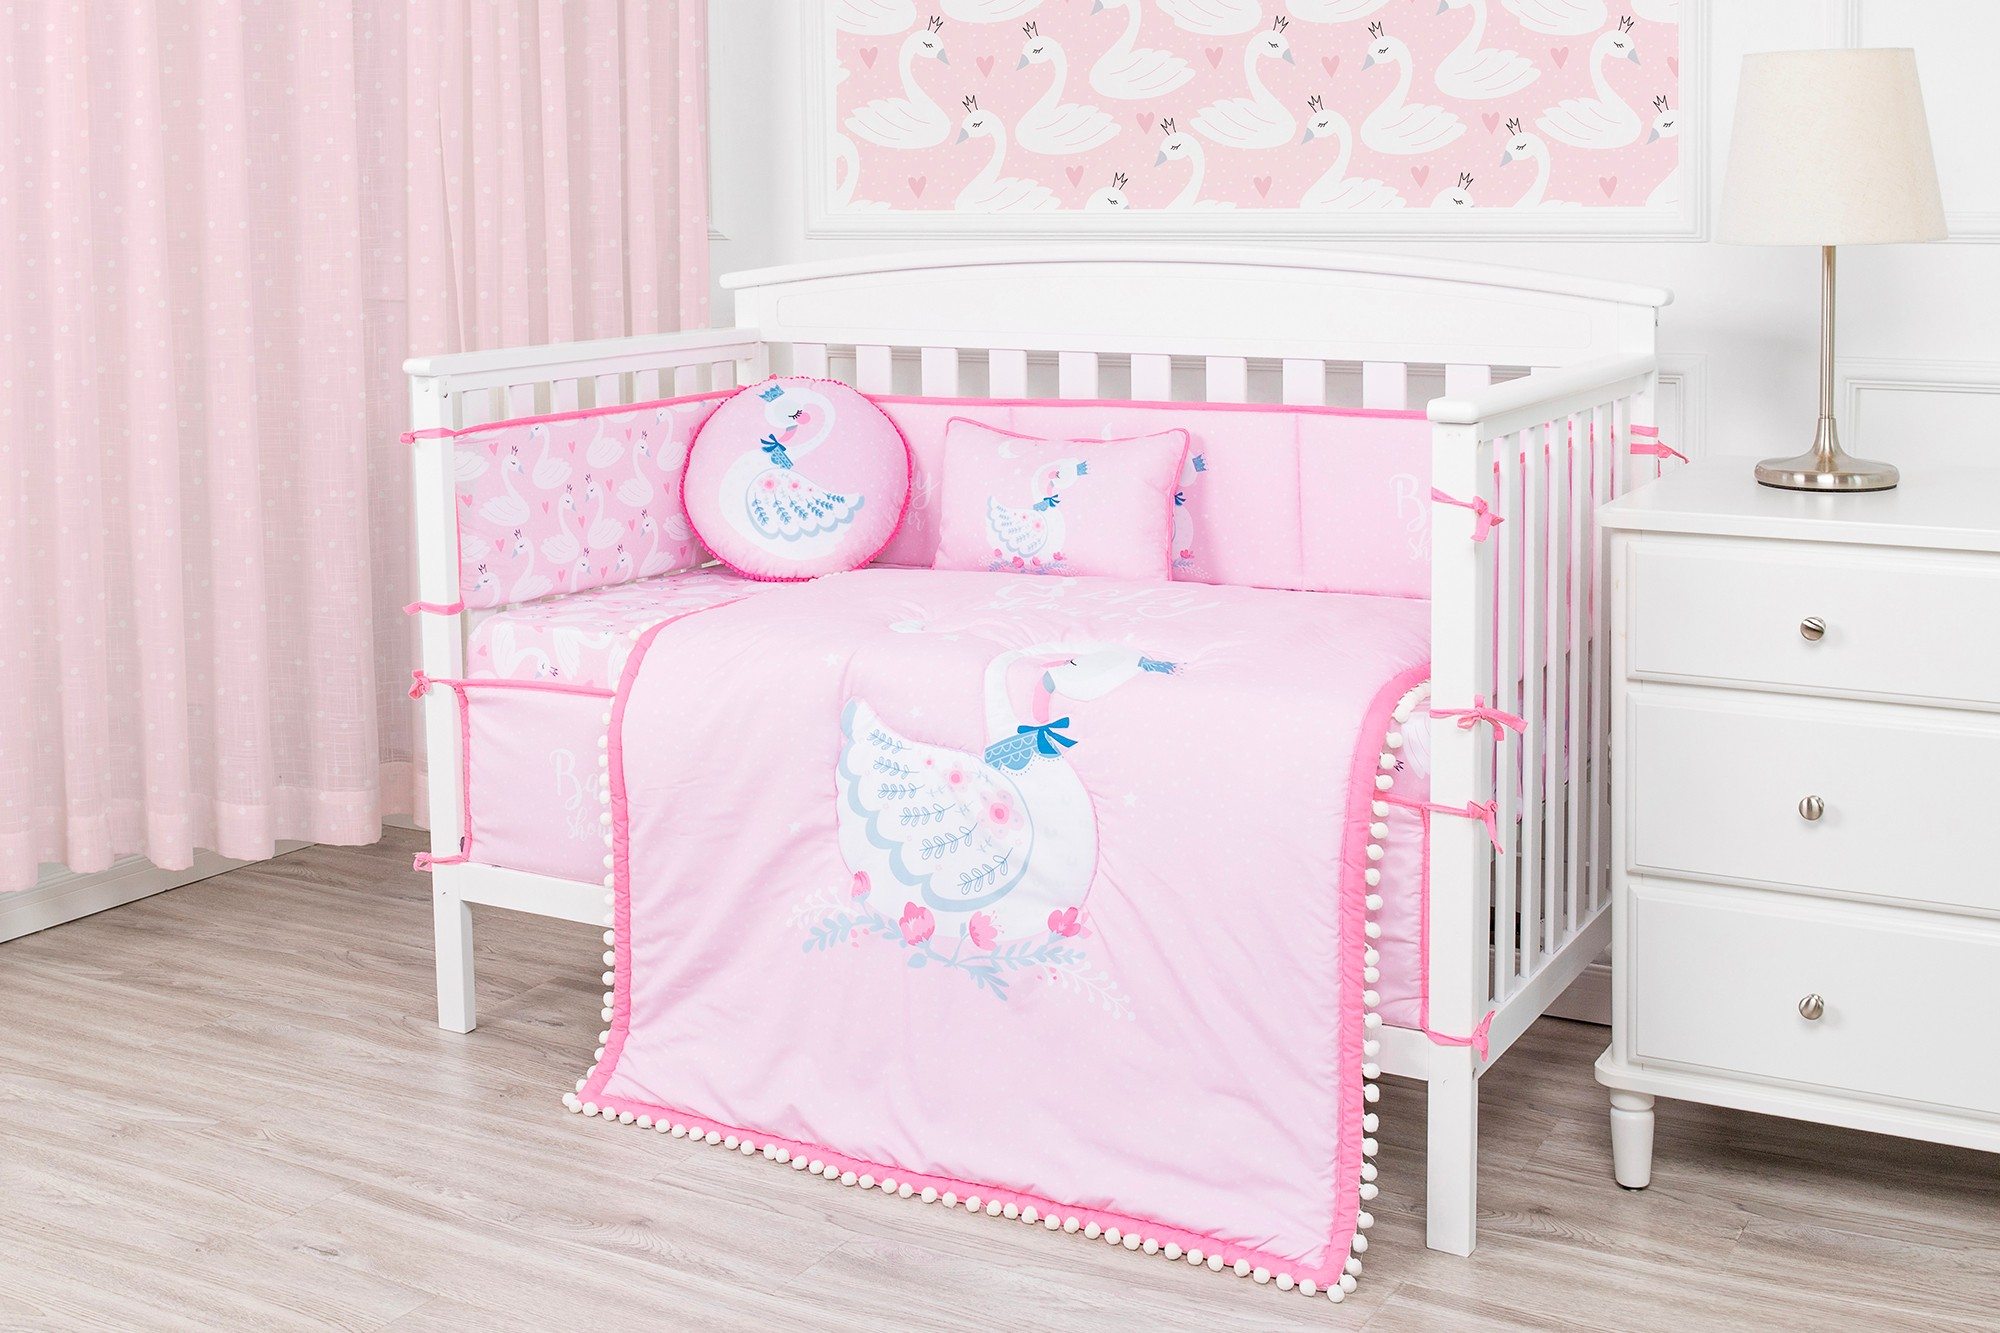 Pink theme beautiful swan baby crib bedding set microfiber cot bedding set